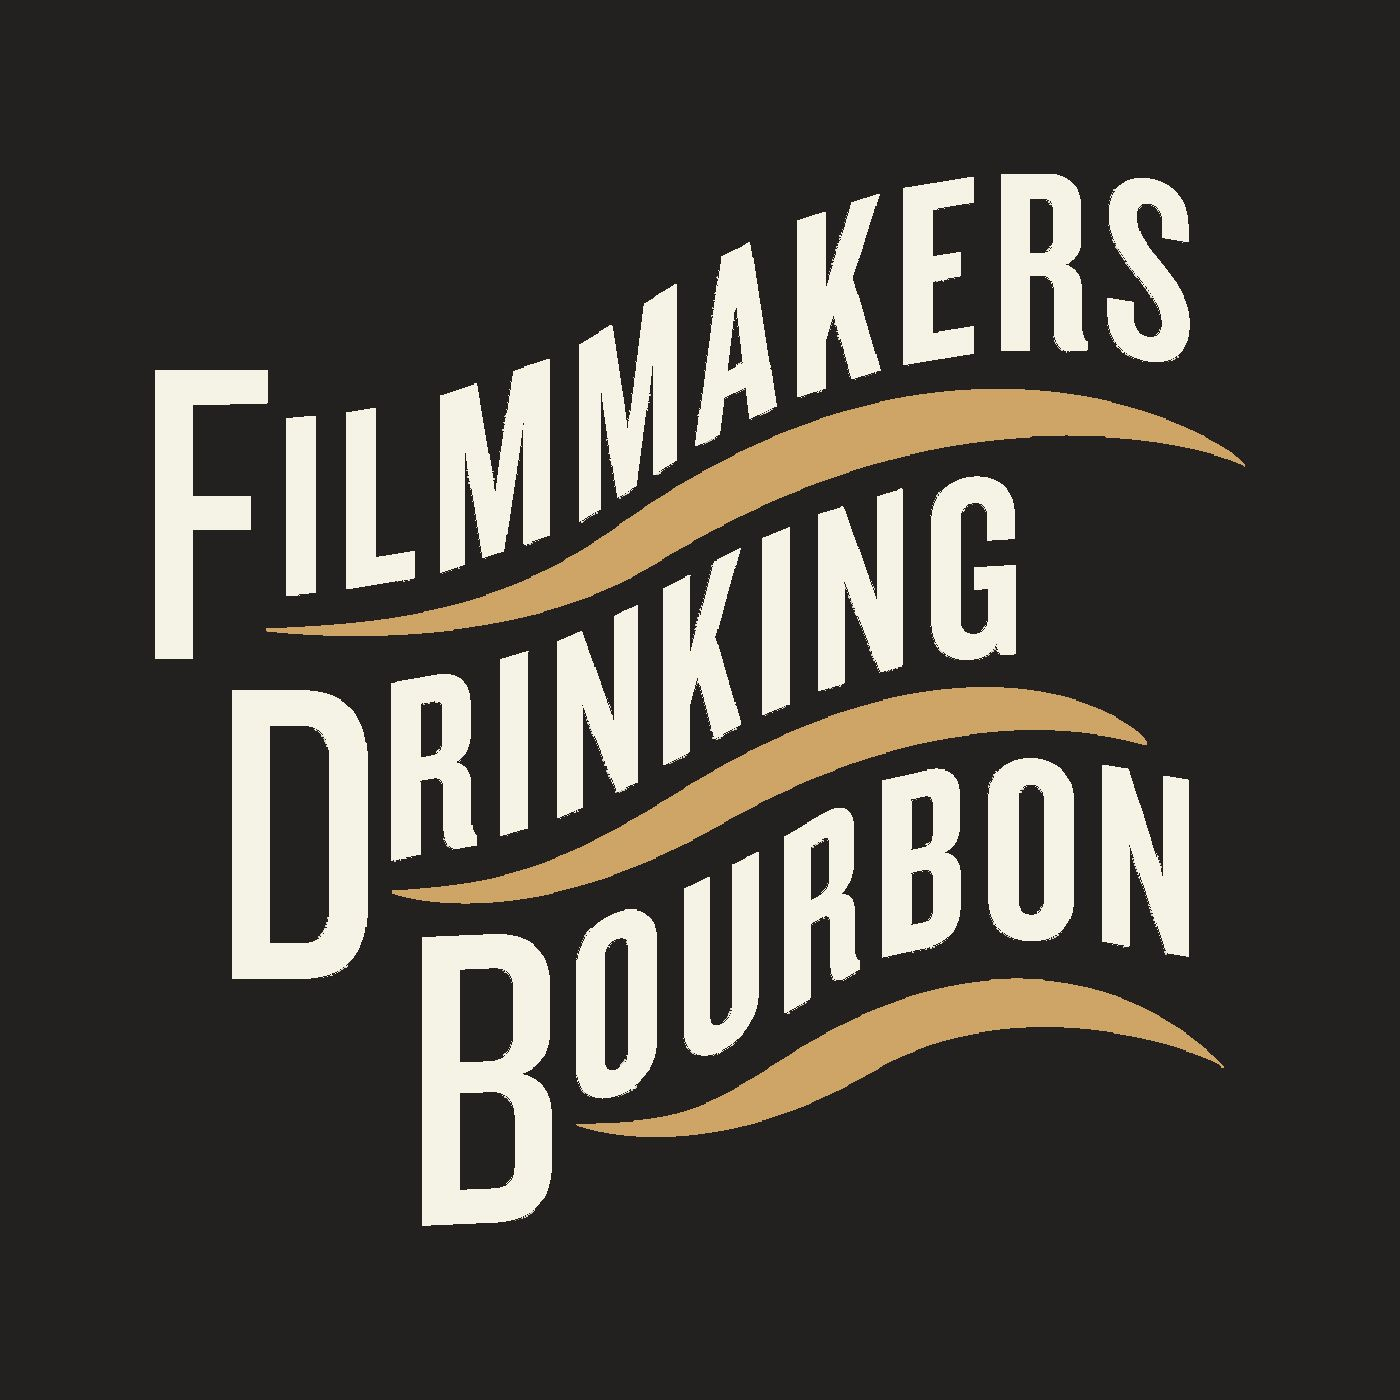 Filmmakers Drinking Bourbon